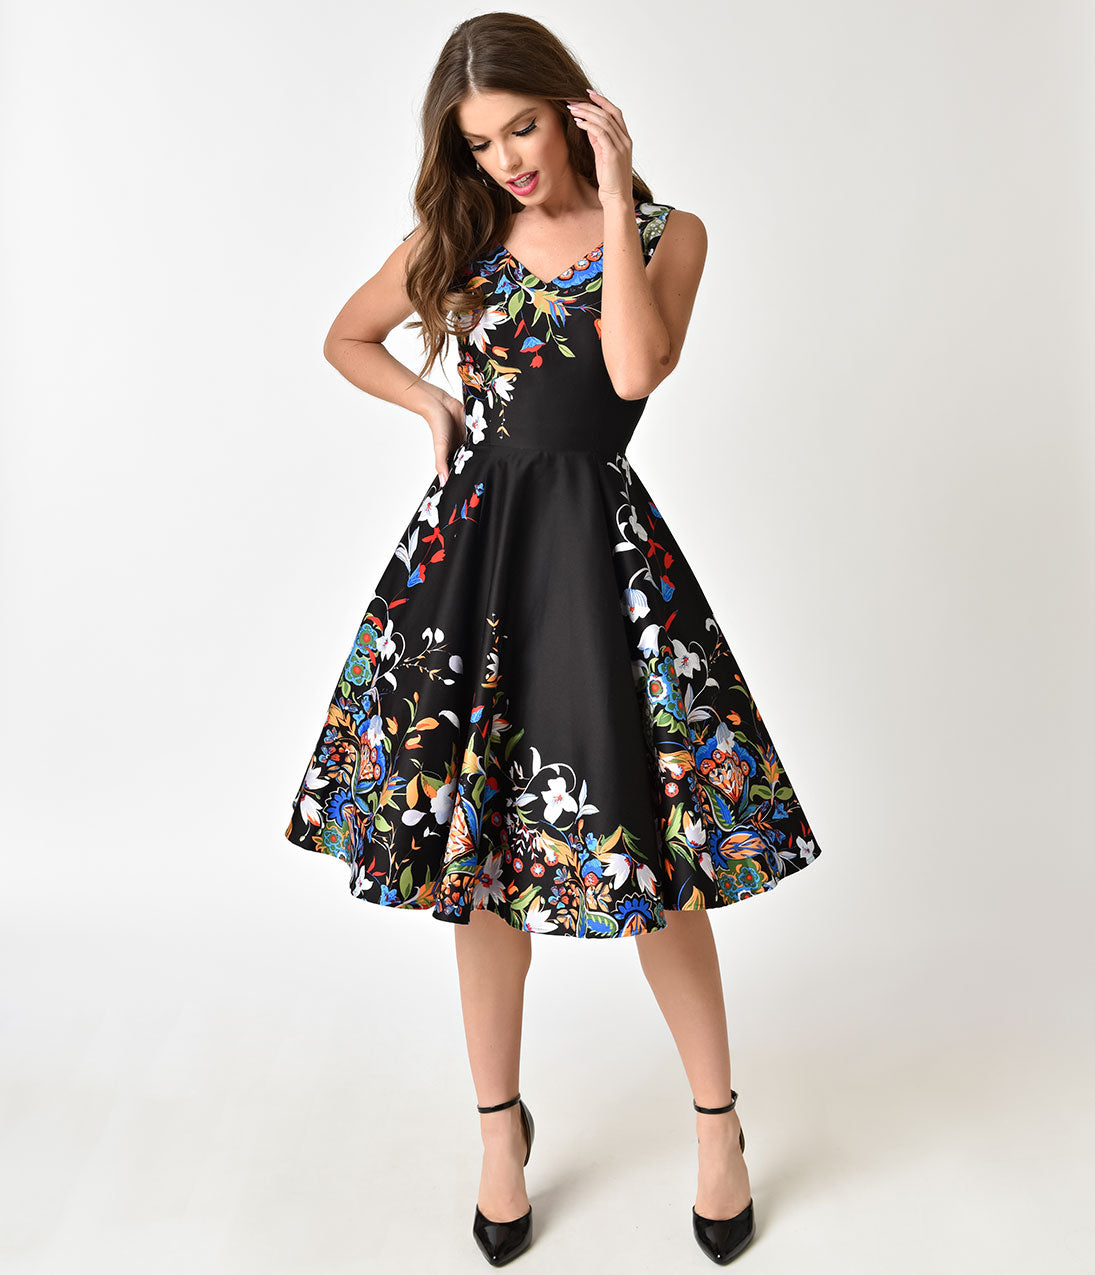 1950s Dresses, 50s Dresses | 1950s Style Dresses Black Double Border Floral Print Cotton Swing Dress $78.00 AT vintagedancer.com